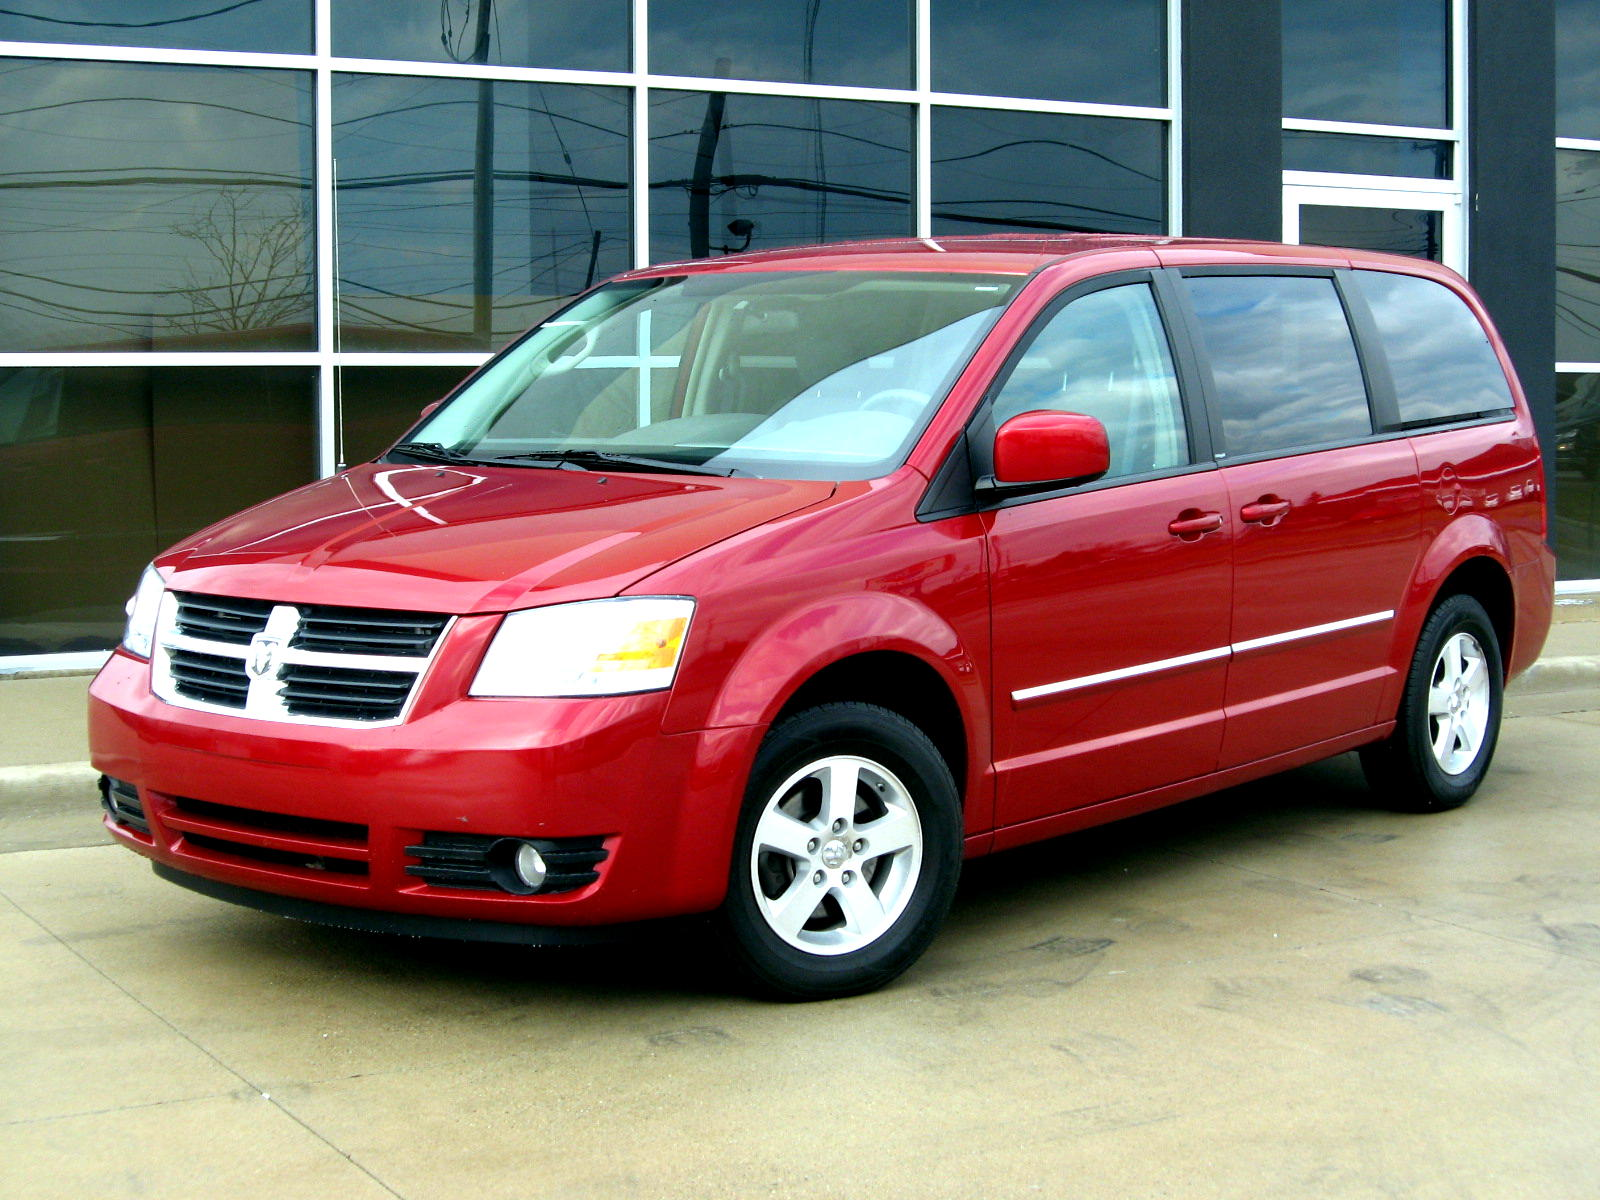 dodge 2008 dodge grand caravan 2008 dodge grand caravan image 8. Cars Review. Best American Auto & Cars Review